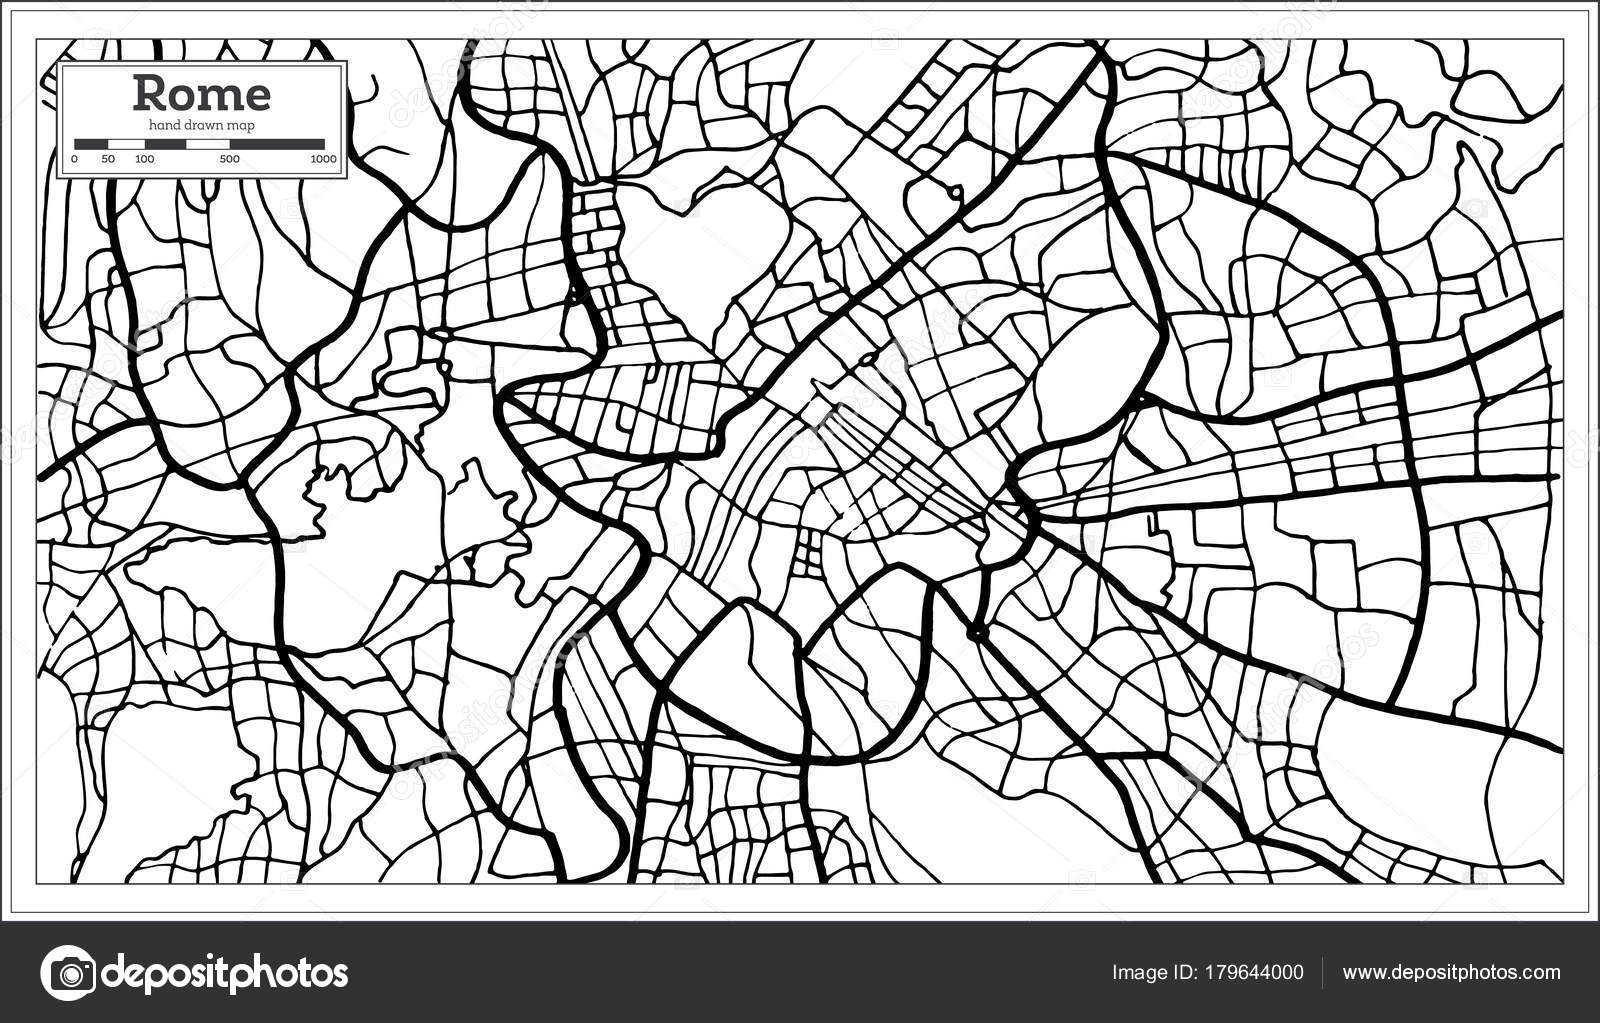 Rome italy city map in black and white color stock vector rome italy city map in black and white color stock vector altavistaventures Choice Image